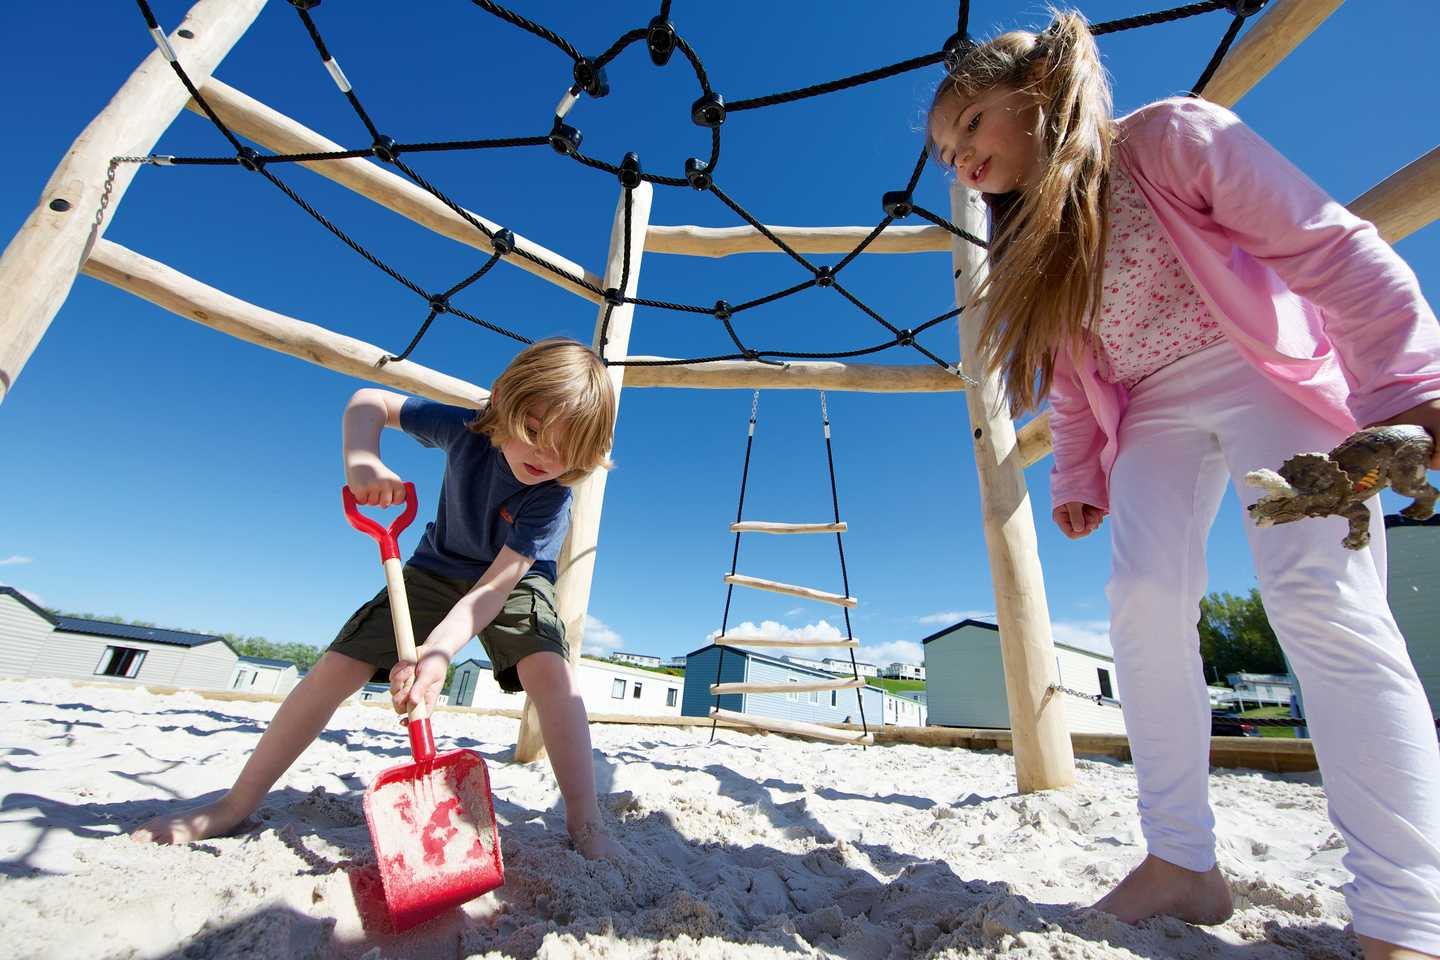 Children playing with sand in the outdoor play area